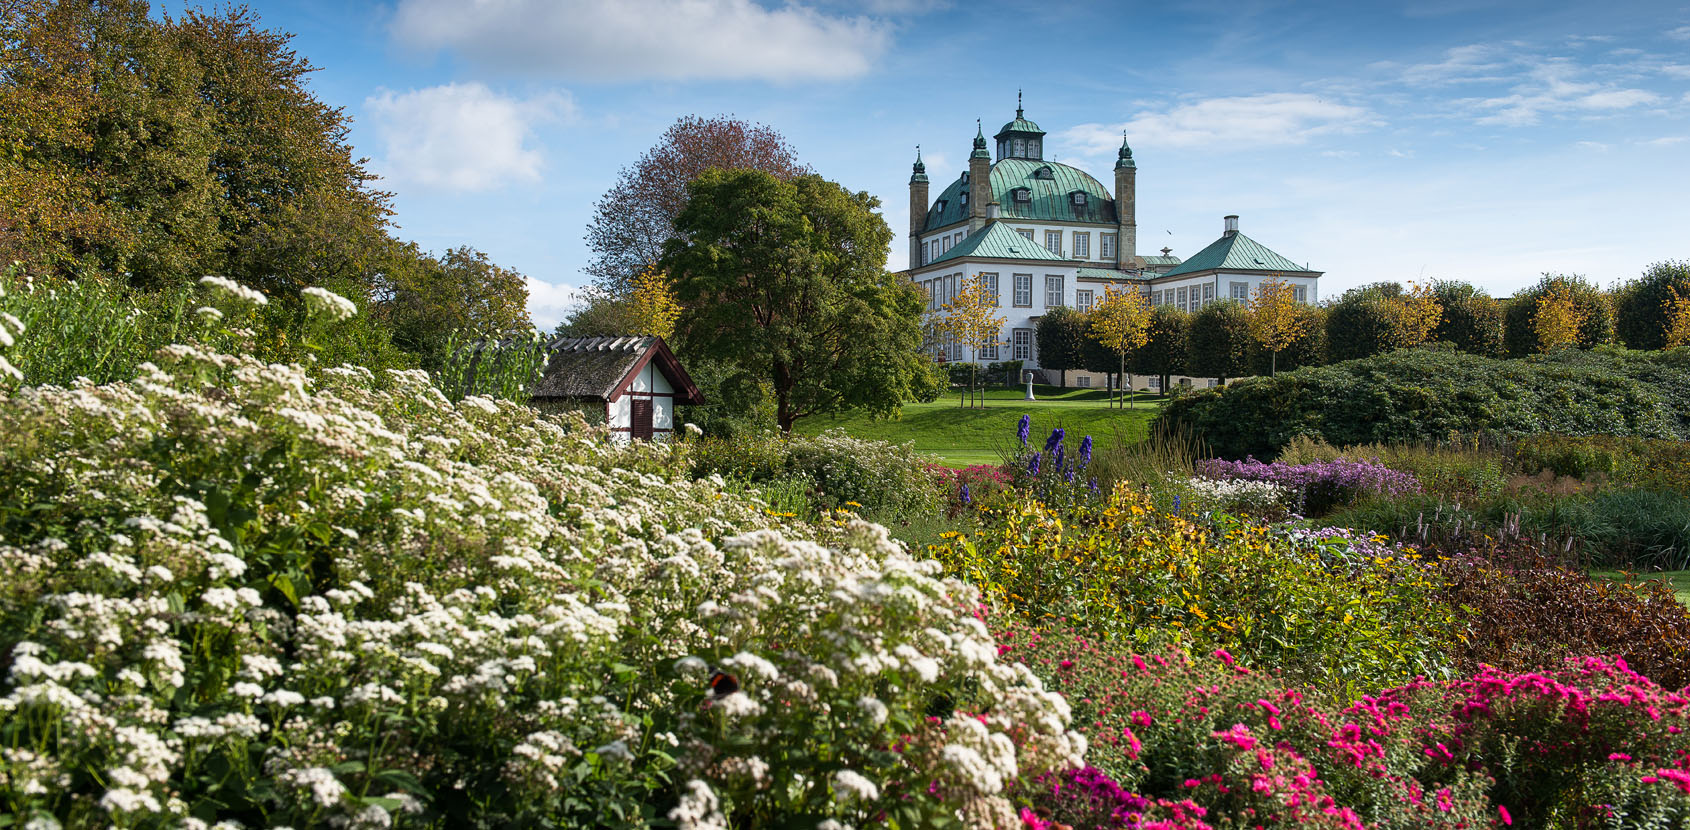 The Private Gardens at Fredensborg Palace photo: Thomas Rahbek, SLKS